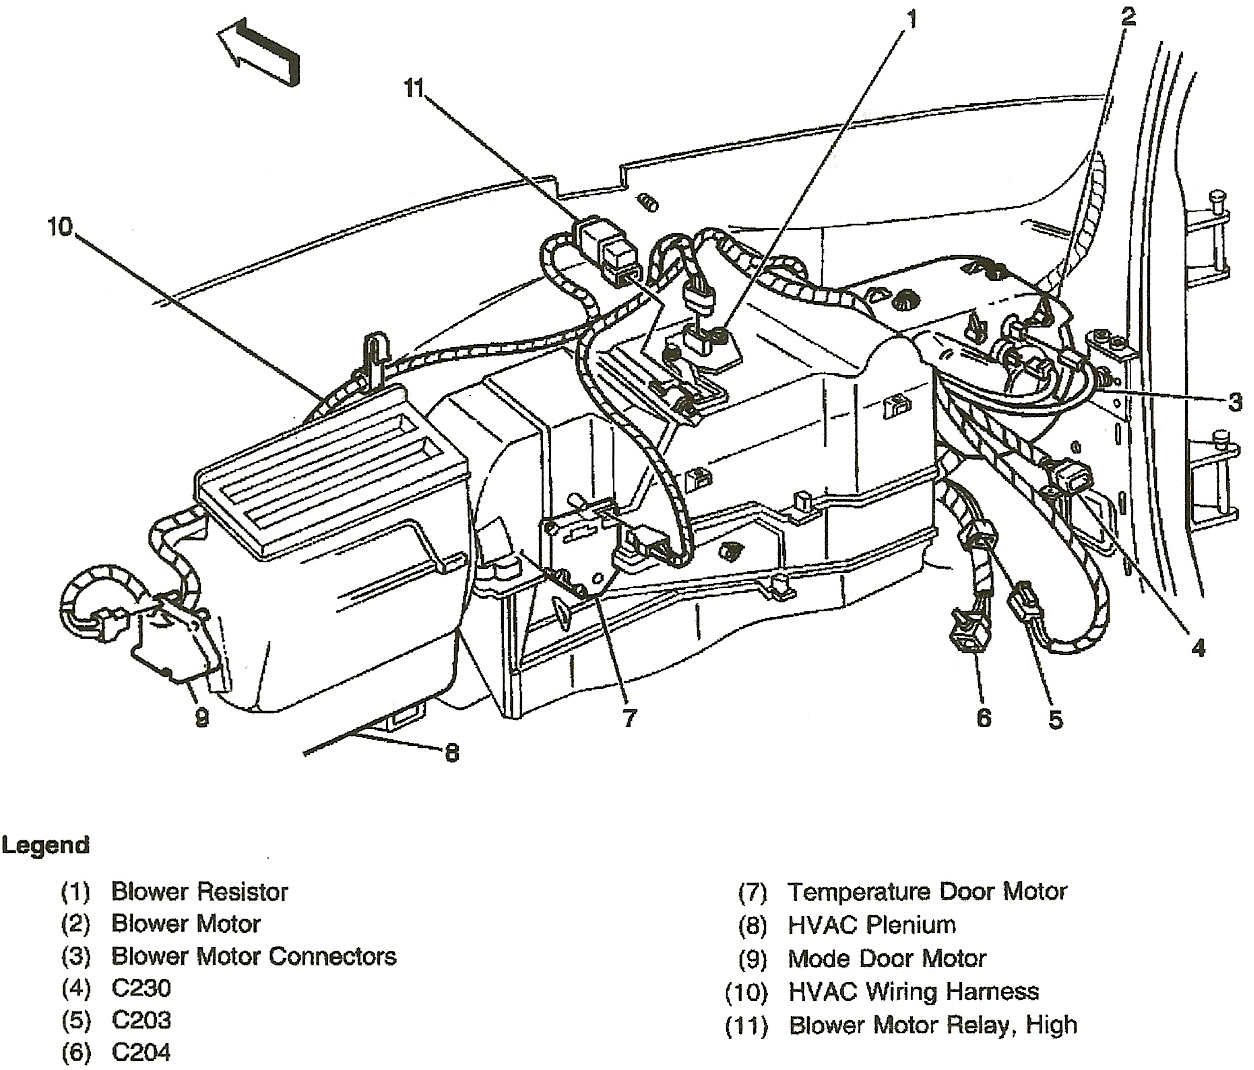 hight resolution of 1999 yukon engine diagram data schematic diagram 1999 gmc yukon engine diagram 1999 gmc engine diagram